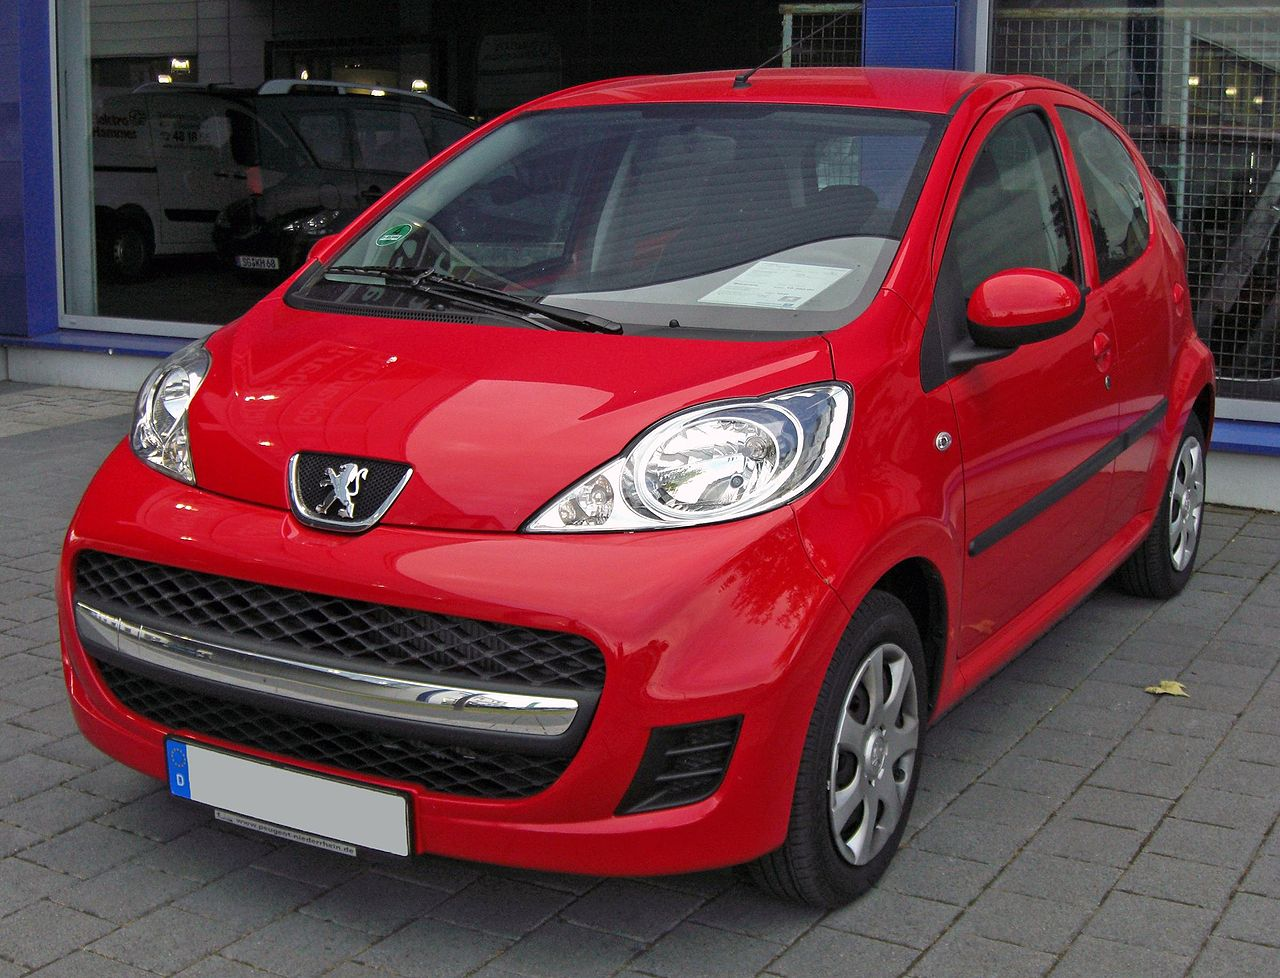 file peugeot 107 facelift 20090603 front jpg wikimedia. Black Bedroom Furniture Sets. Home Design Ideas